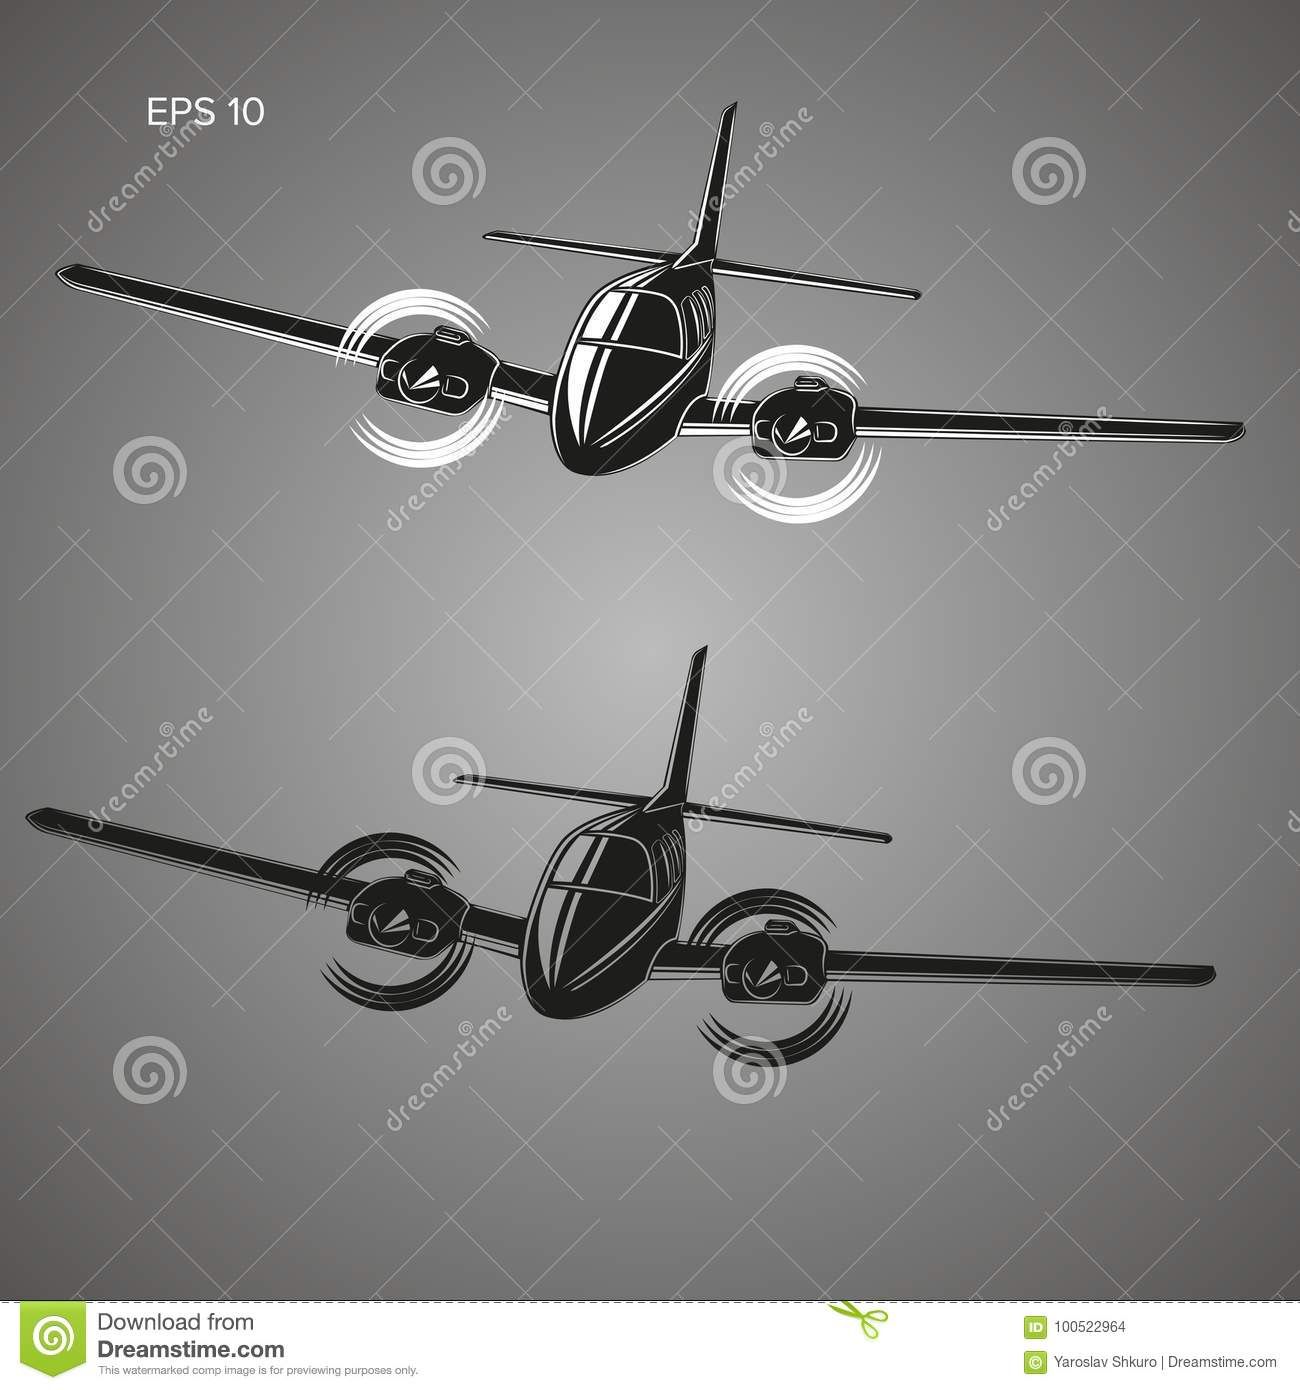 Download Small Plane Vector Illustration. Twin Engine Propelled Aircraft. Business Trip Aircraft. Stock Vector - Illustration of background, vector: 100522964